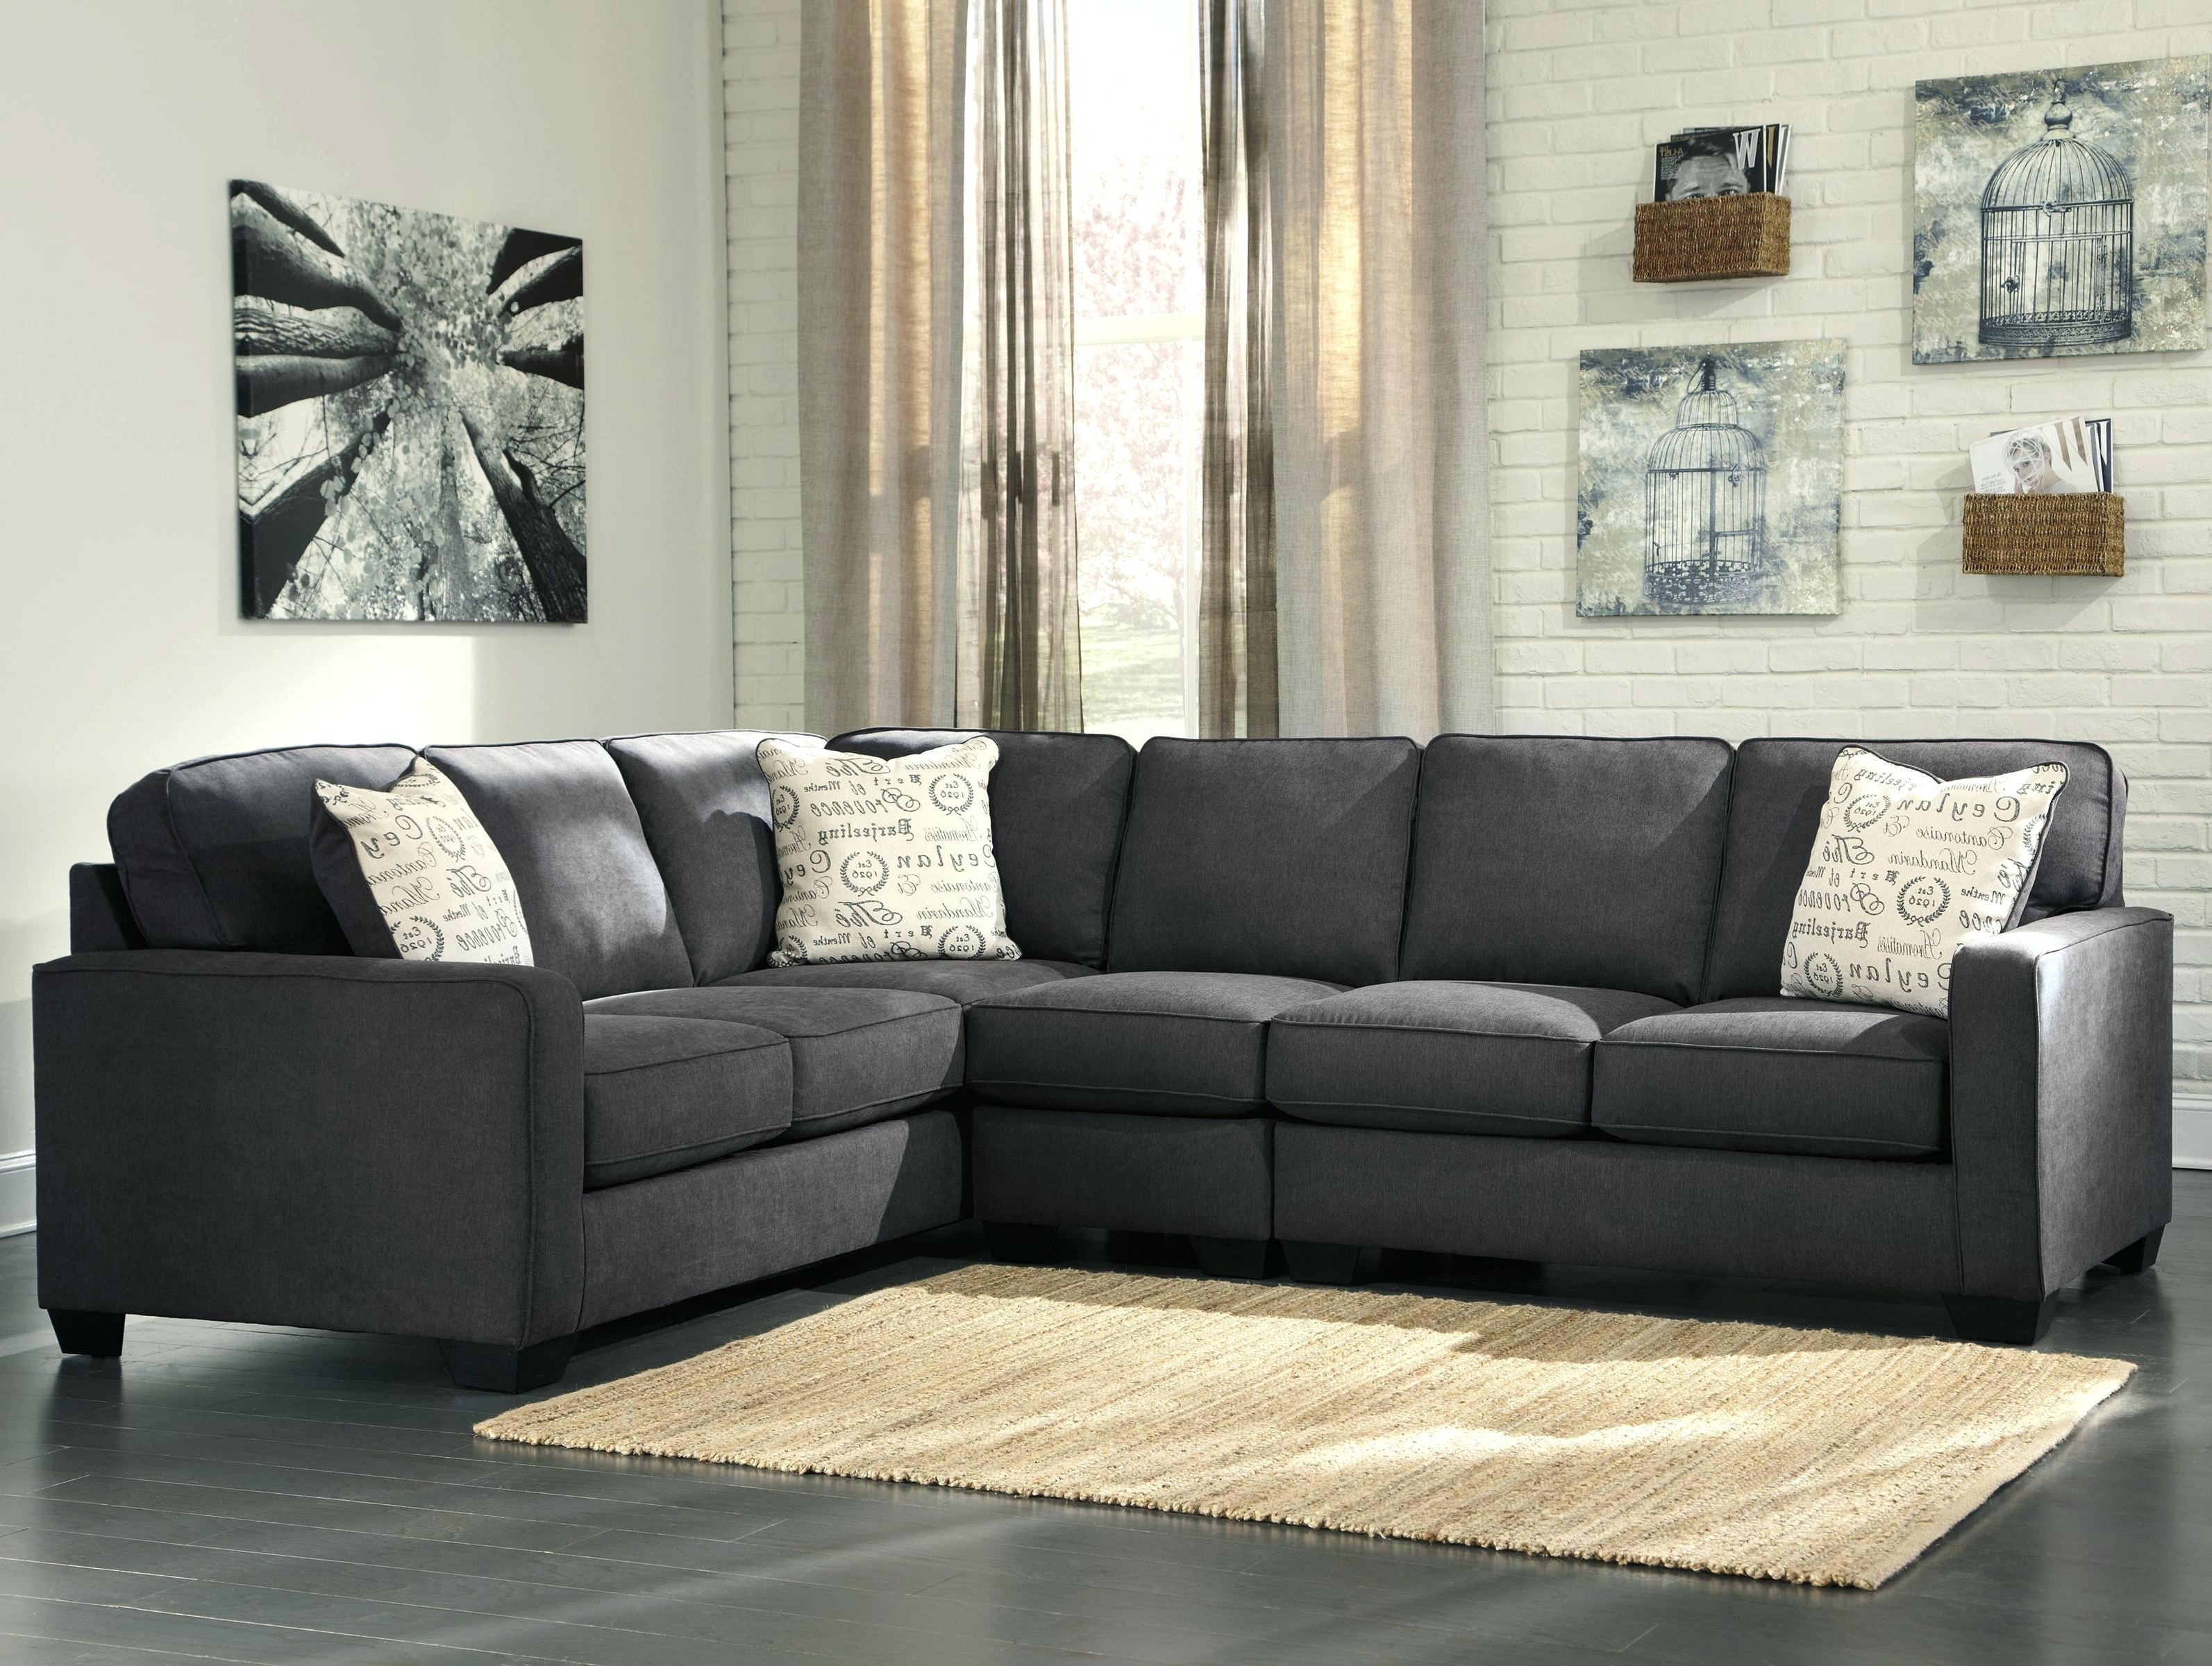 Trendy Johnny Janosik Sectional Sofas Inside Signature Designashley Jinllingsly Contemporary 3 Piece  (View 19 of 20)